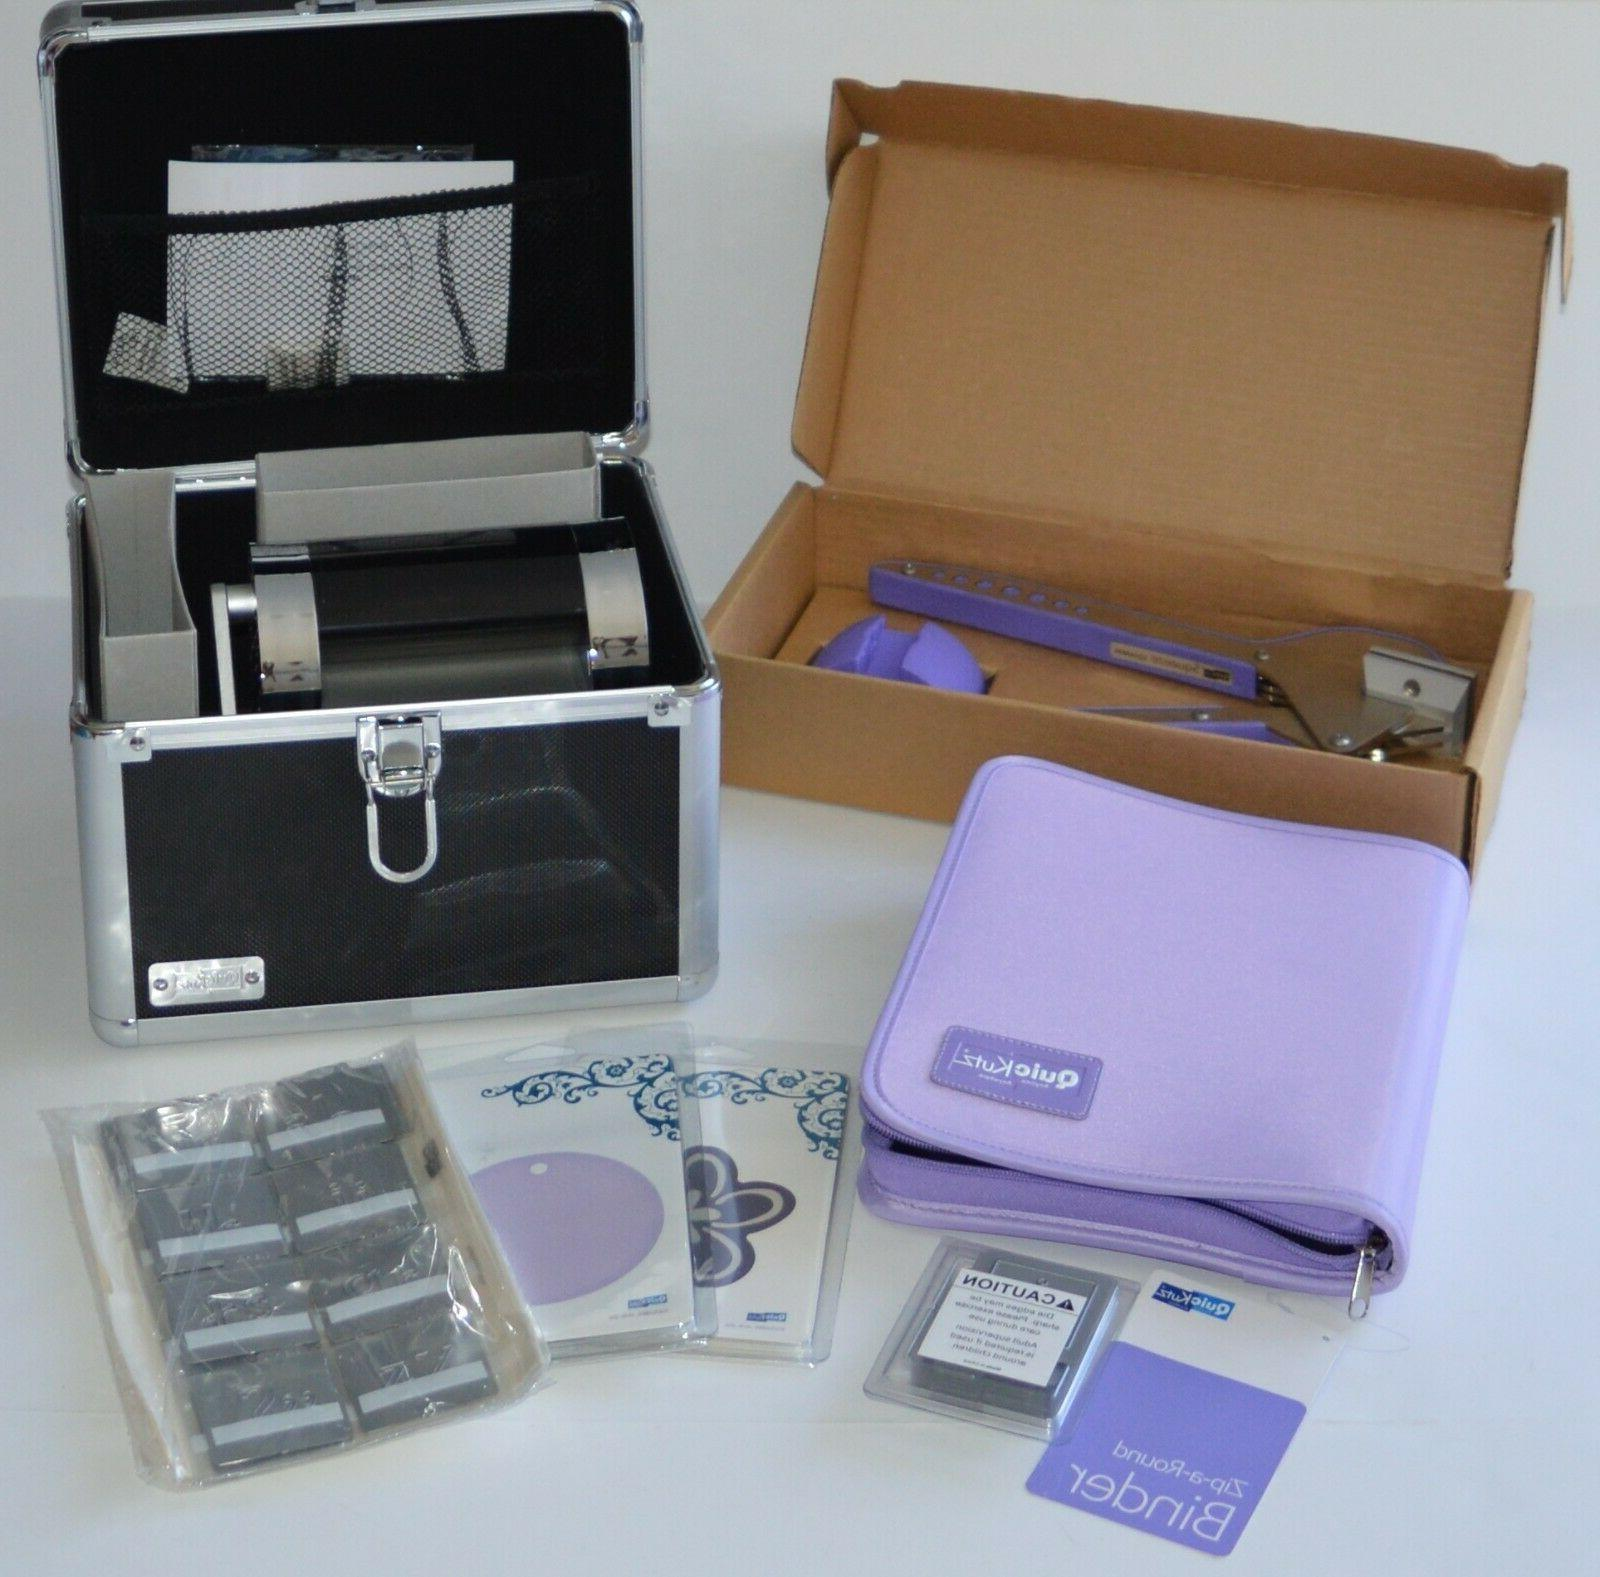 revolution tabletop die cutting machine with extras